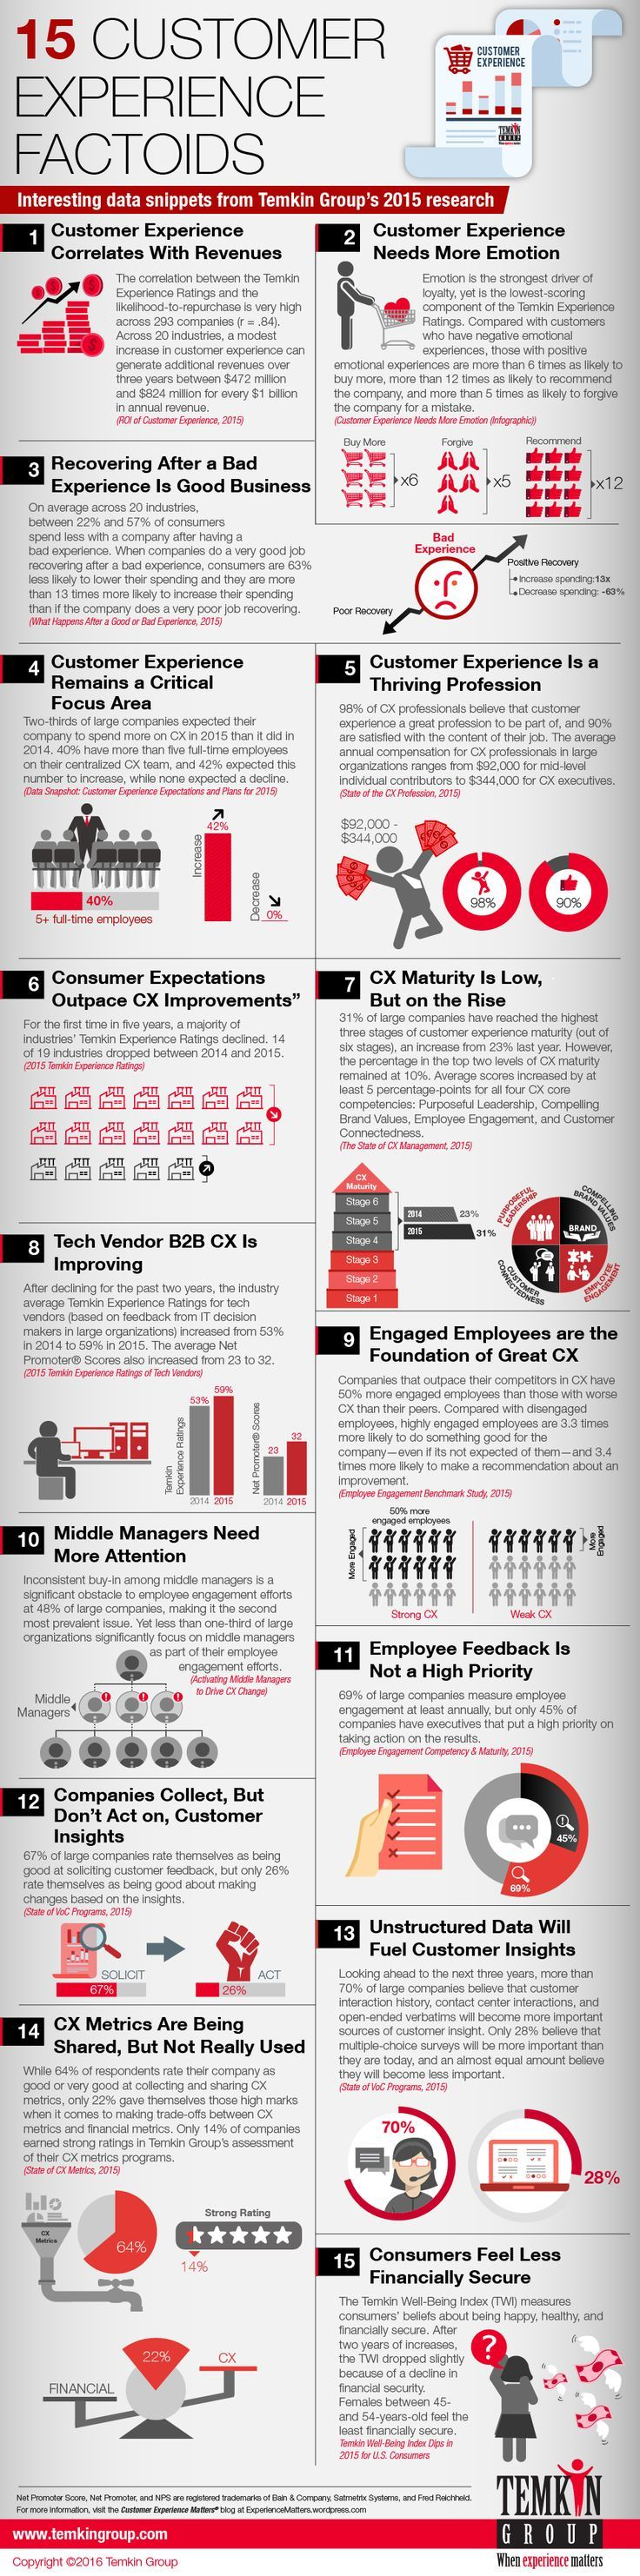 Every year, Temkin Group publishes a lot of leading-edge customer experience research. In case you missed some of it, we decided to create this infographic with 15 of the top data factoids from acr.... If you like UX, design, or design thinking, check out theuxblog.com podcast https://itunes.apple.com/us/podcast/ux-blog-user-experience-design/id1127946001?mt=2